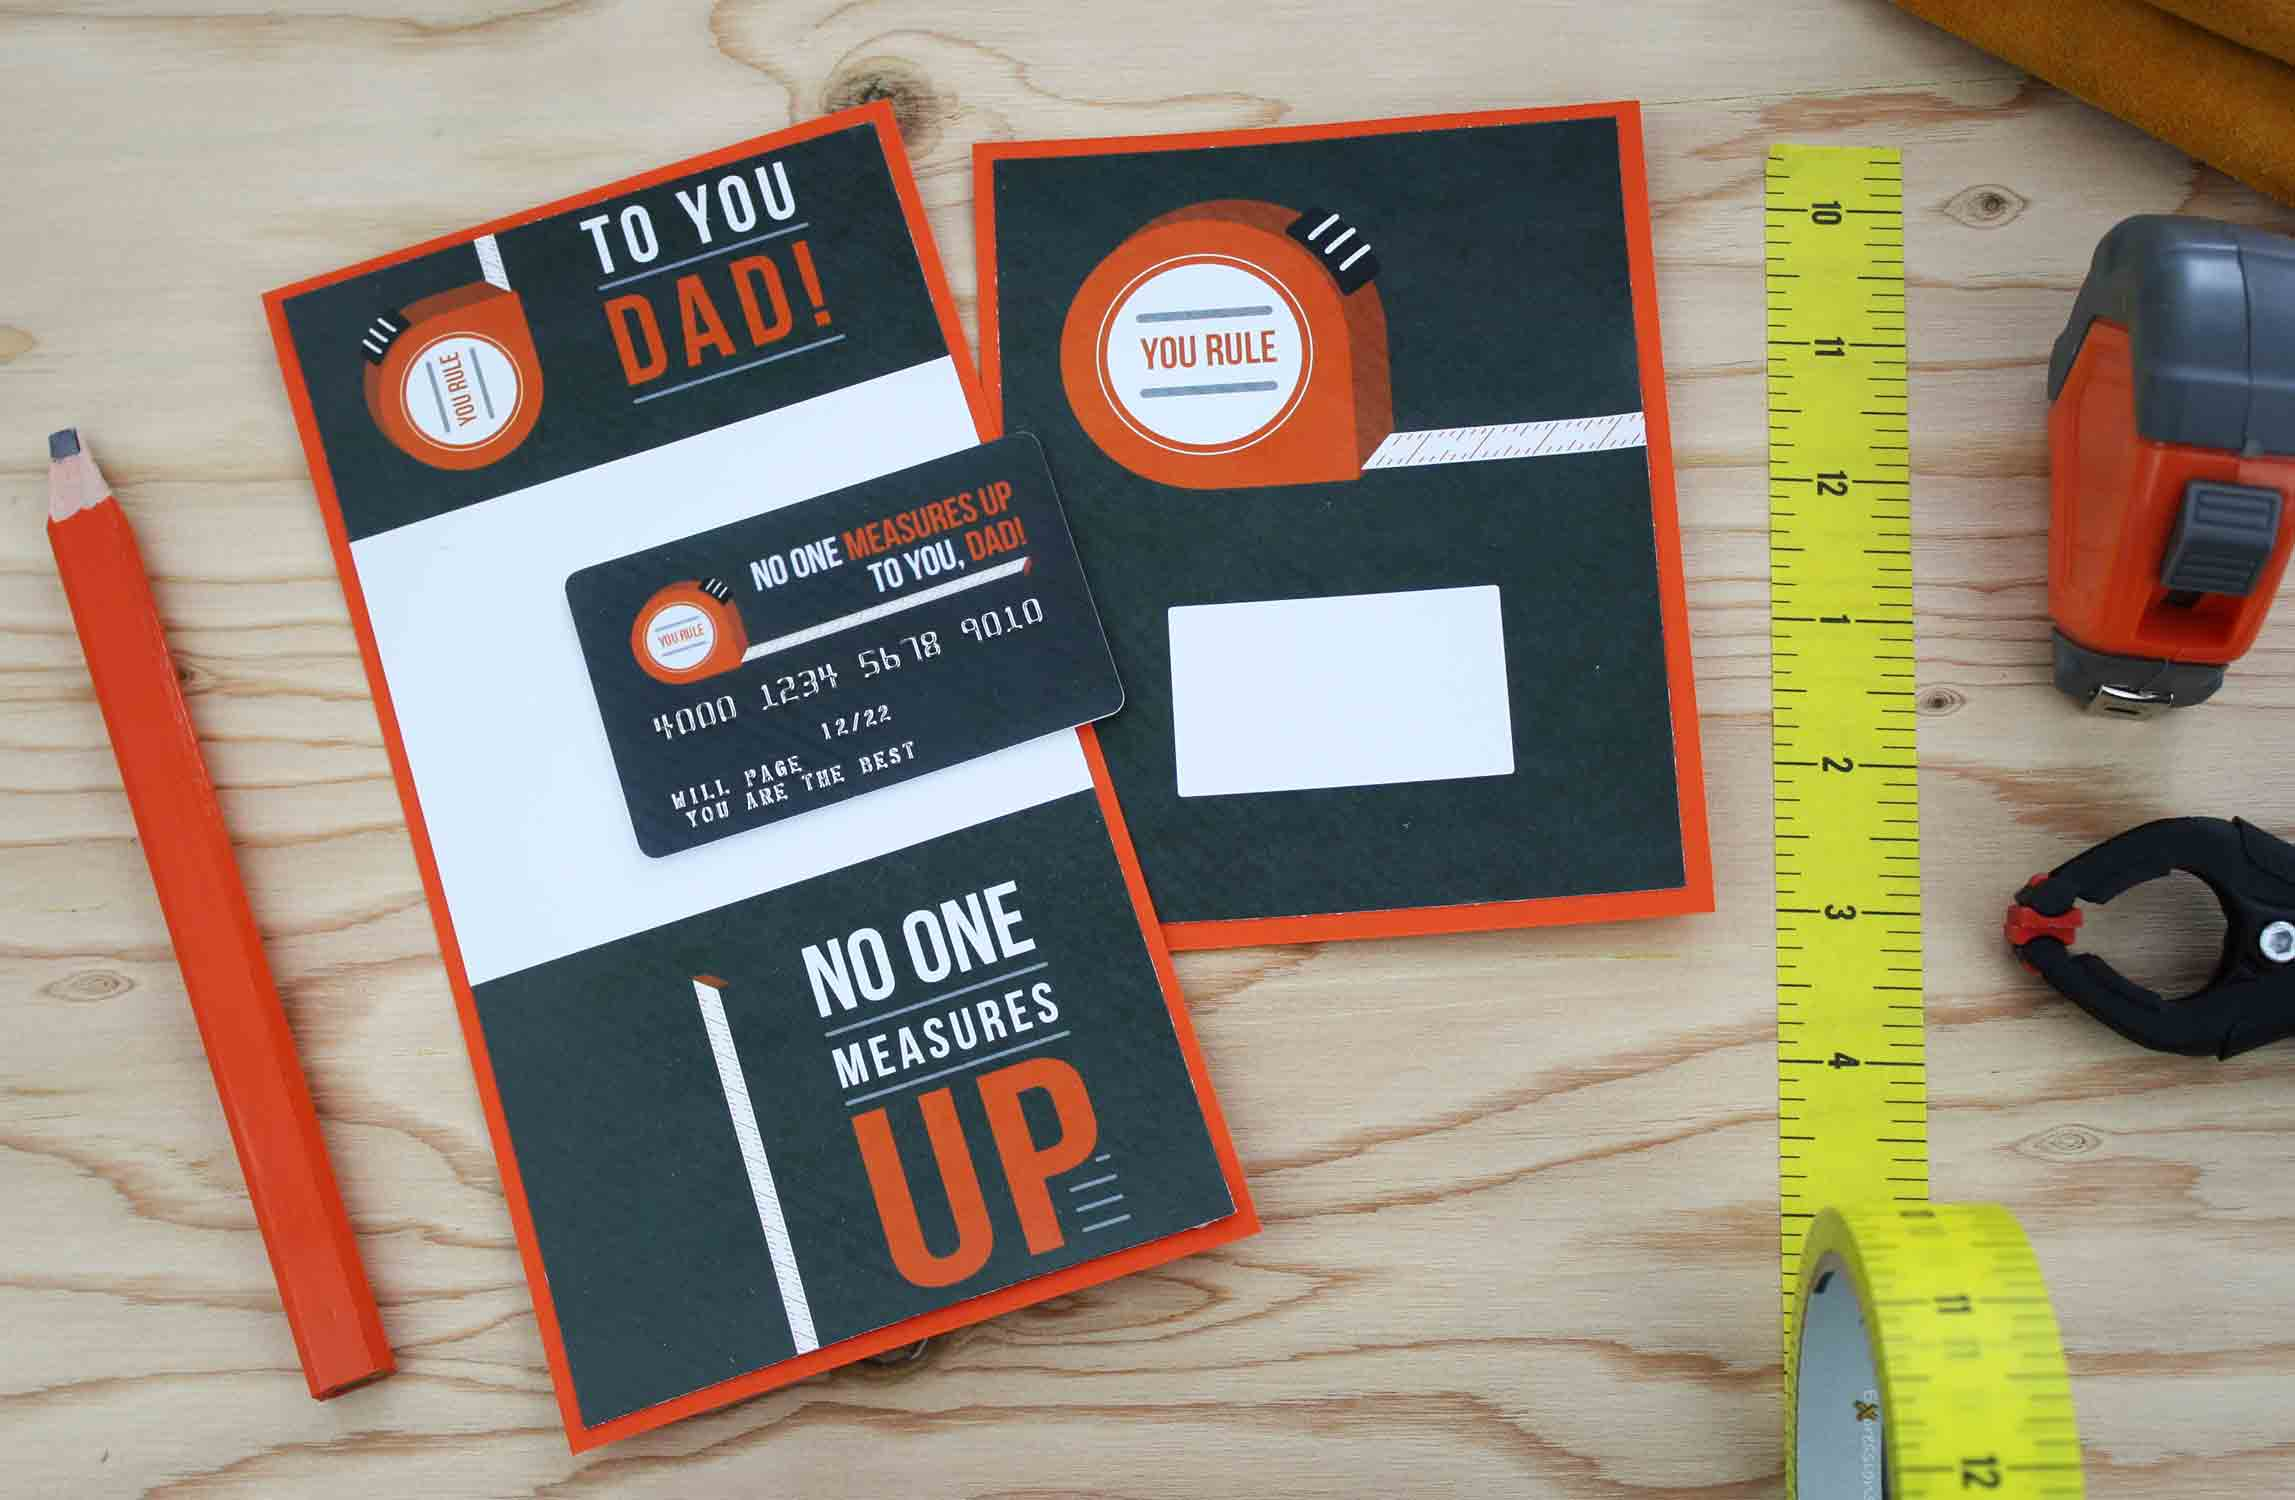 dad measures up gift card holder